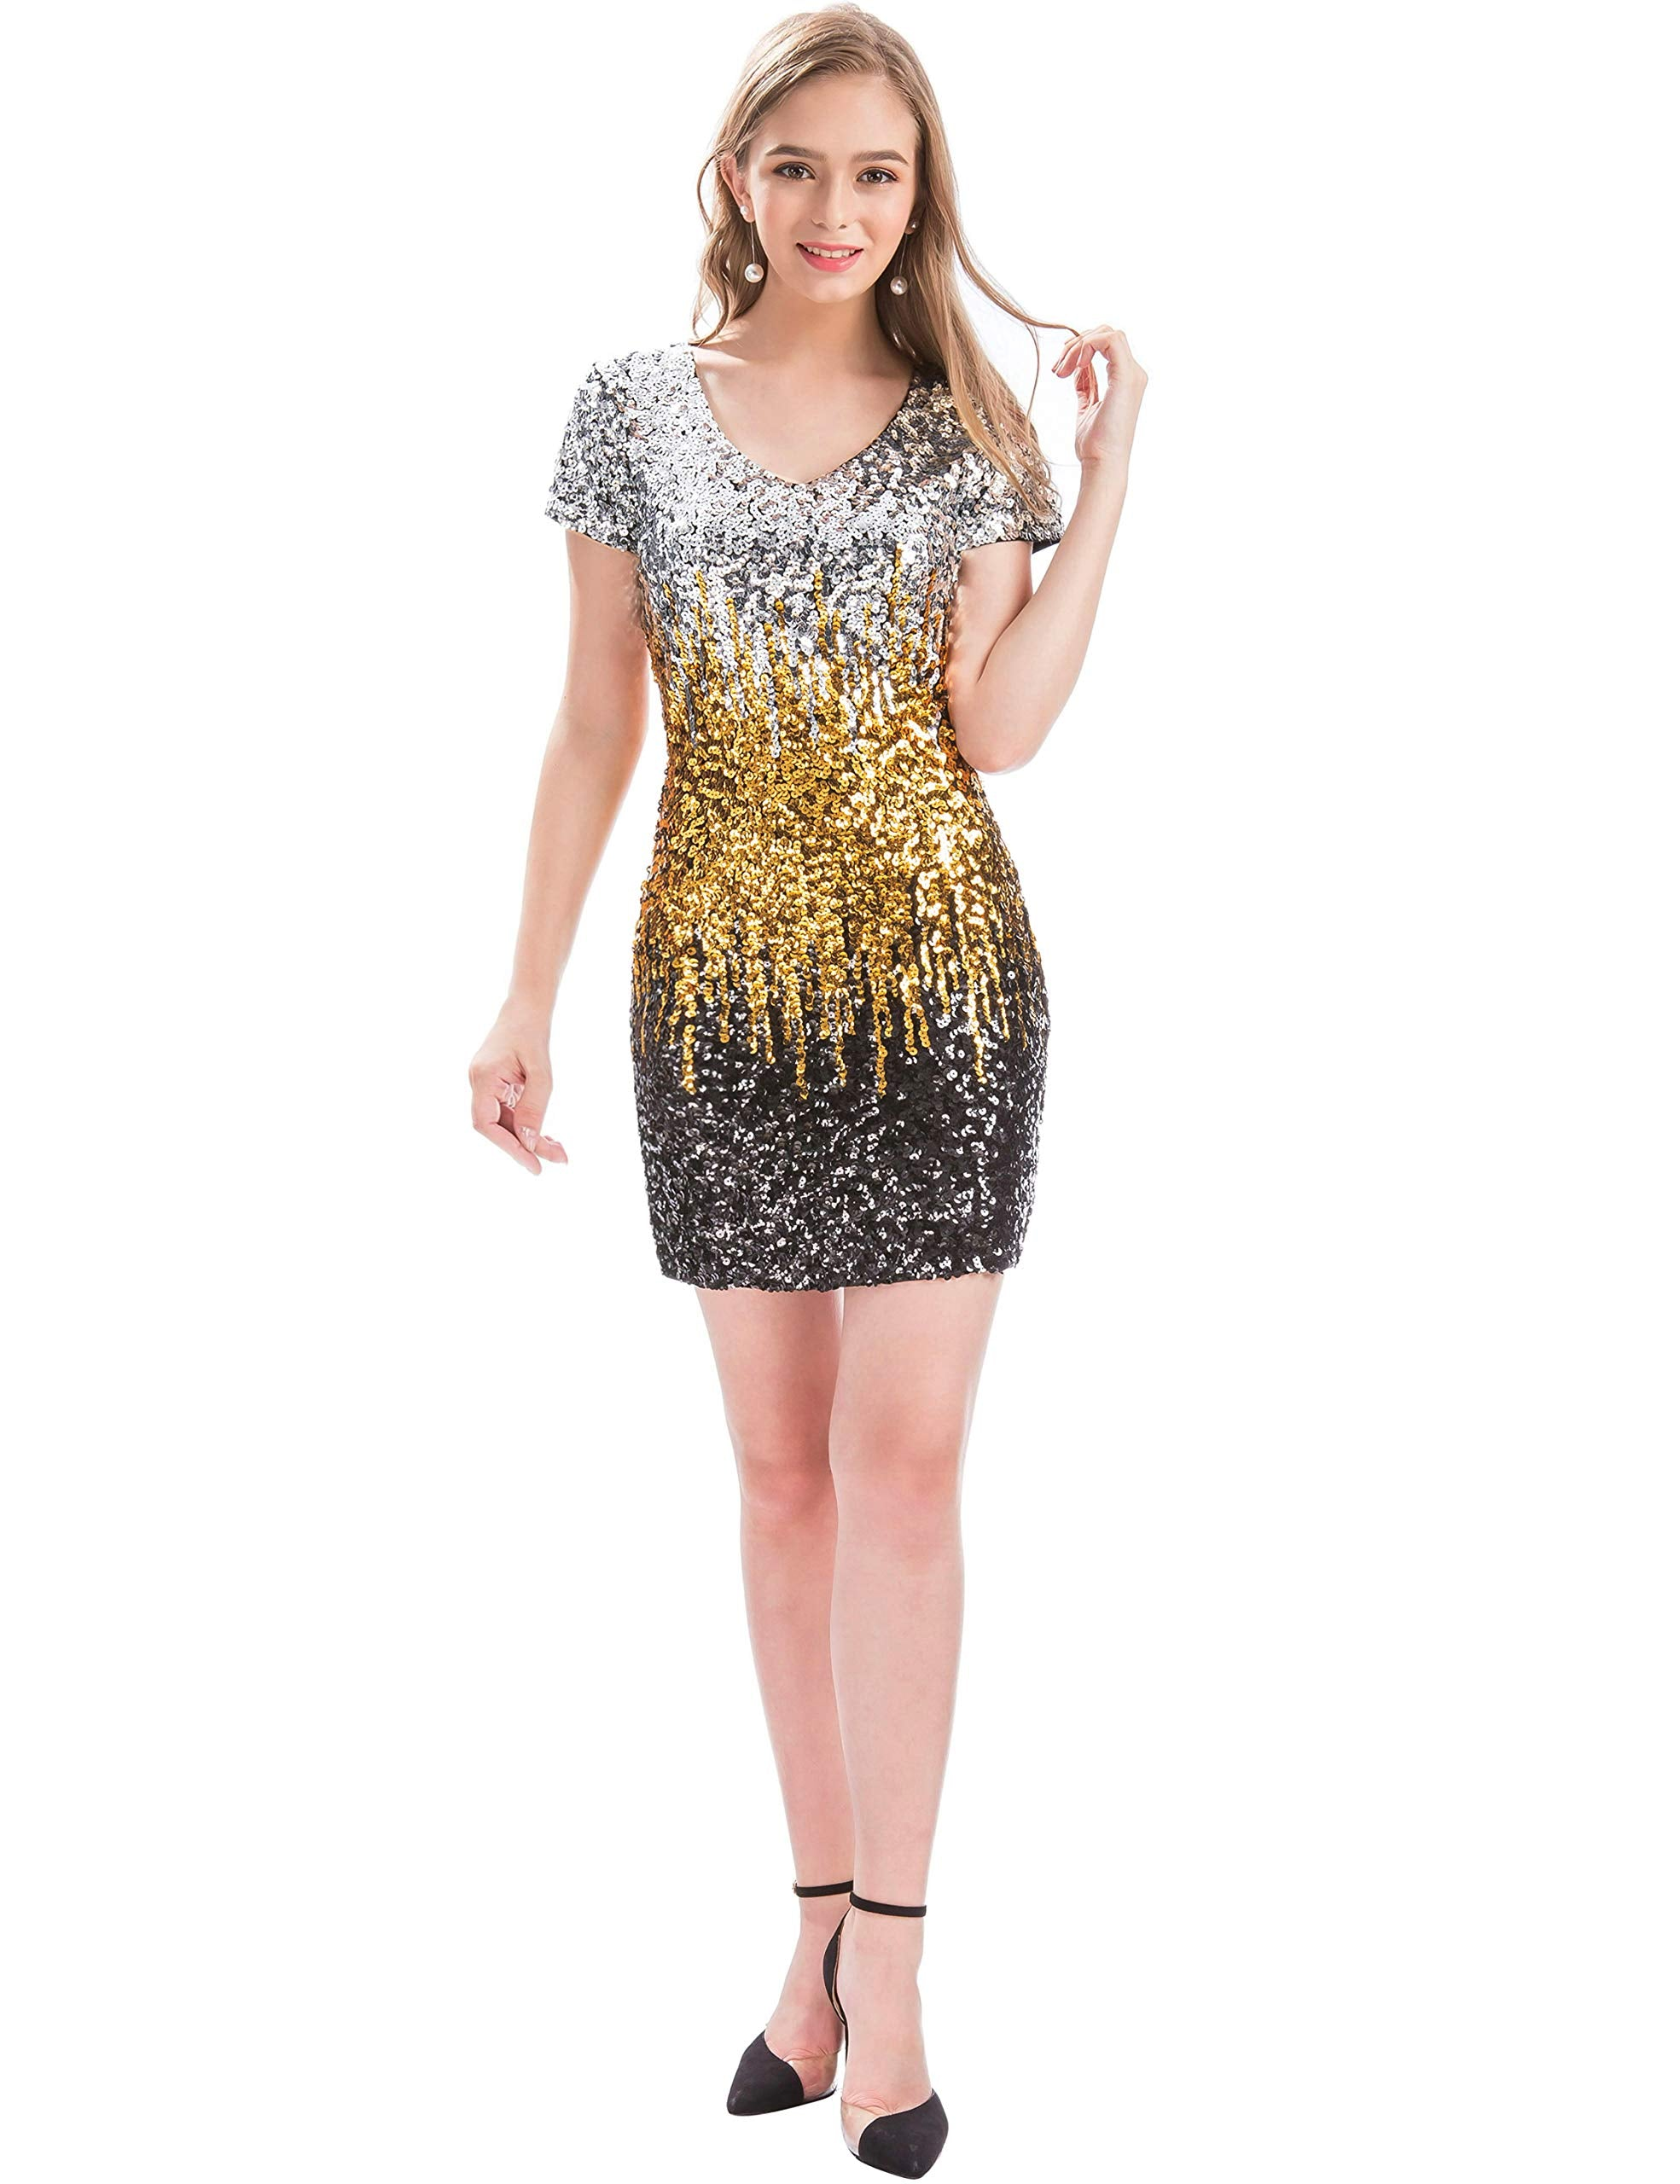 MANER Women's Sequin Glitter Short Sleeve Dress Sexy V Neck Mini Party Club Bodycon Gowns(M,Gold) - wiihuu